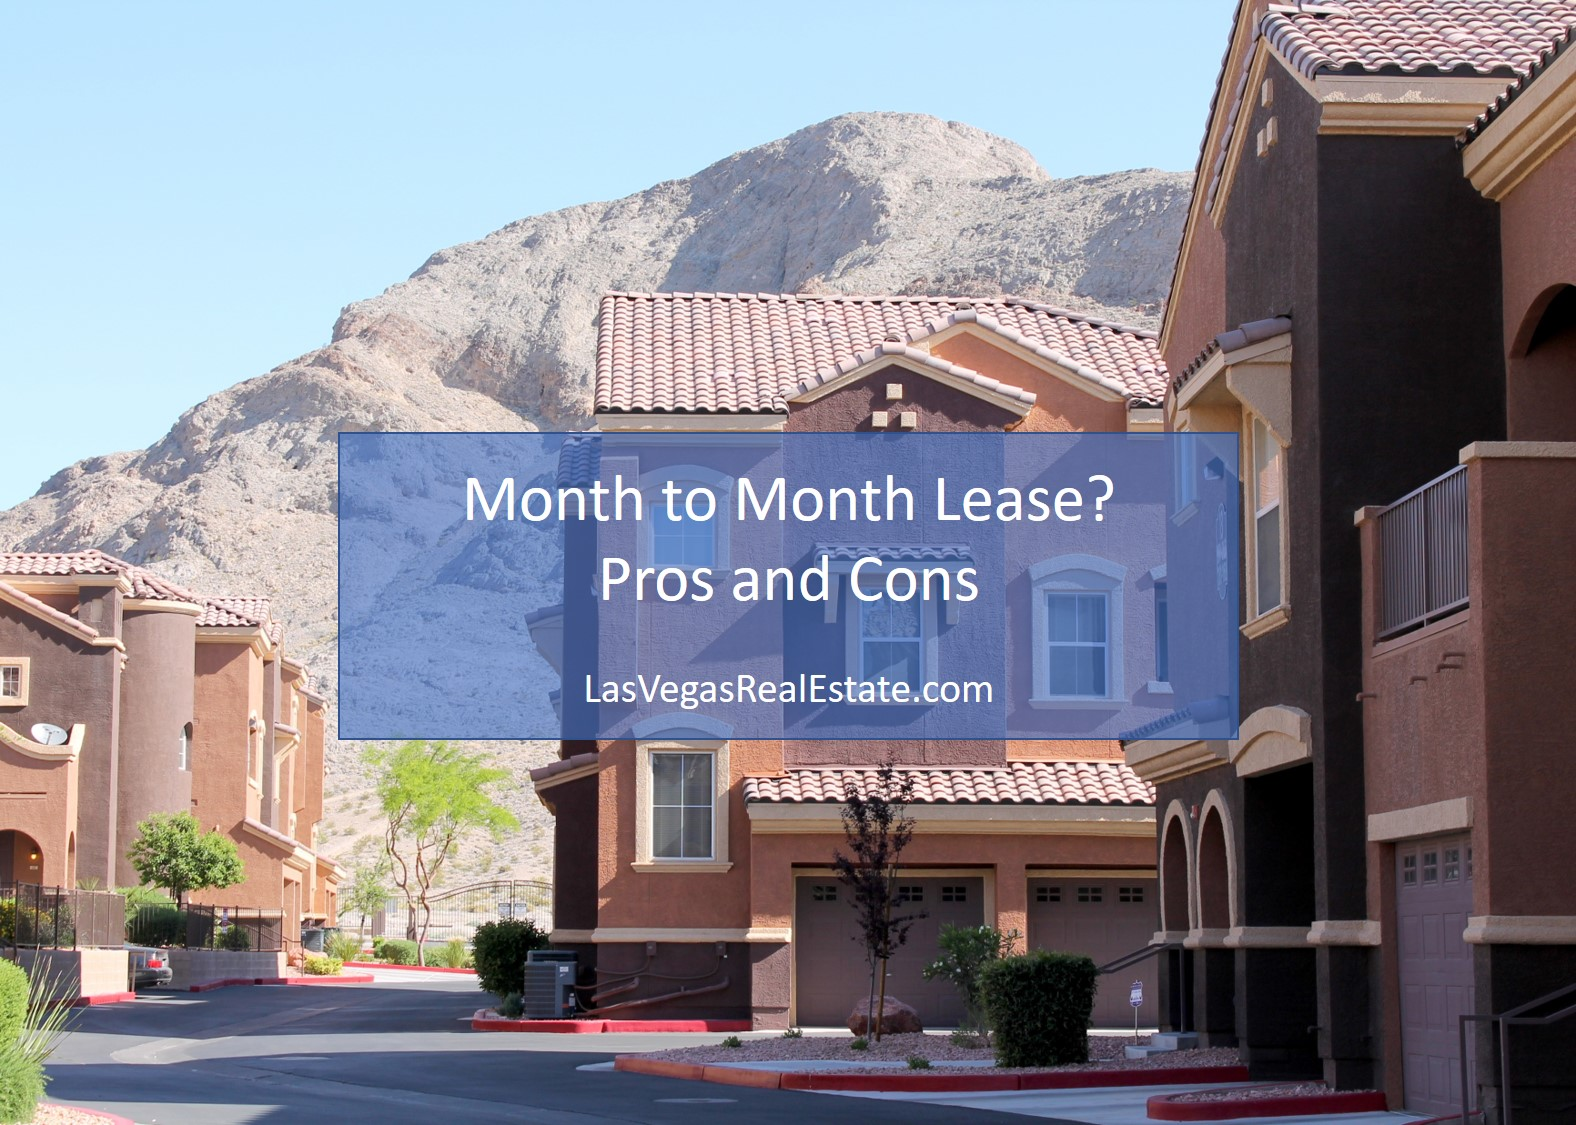 Month to Month Lease - LasVegasRealEstate.com